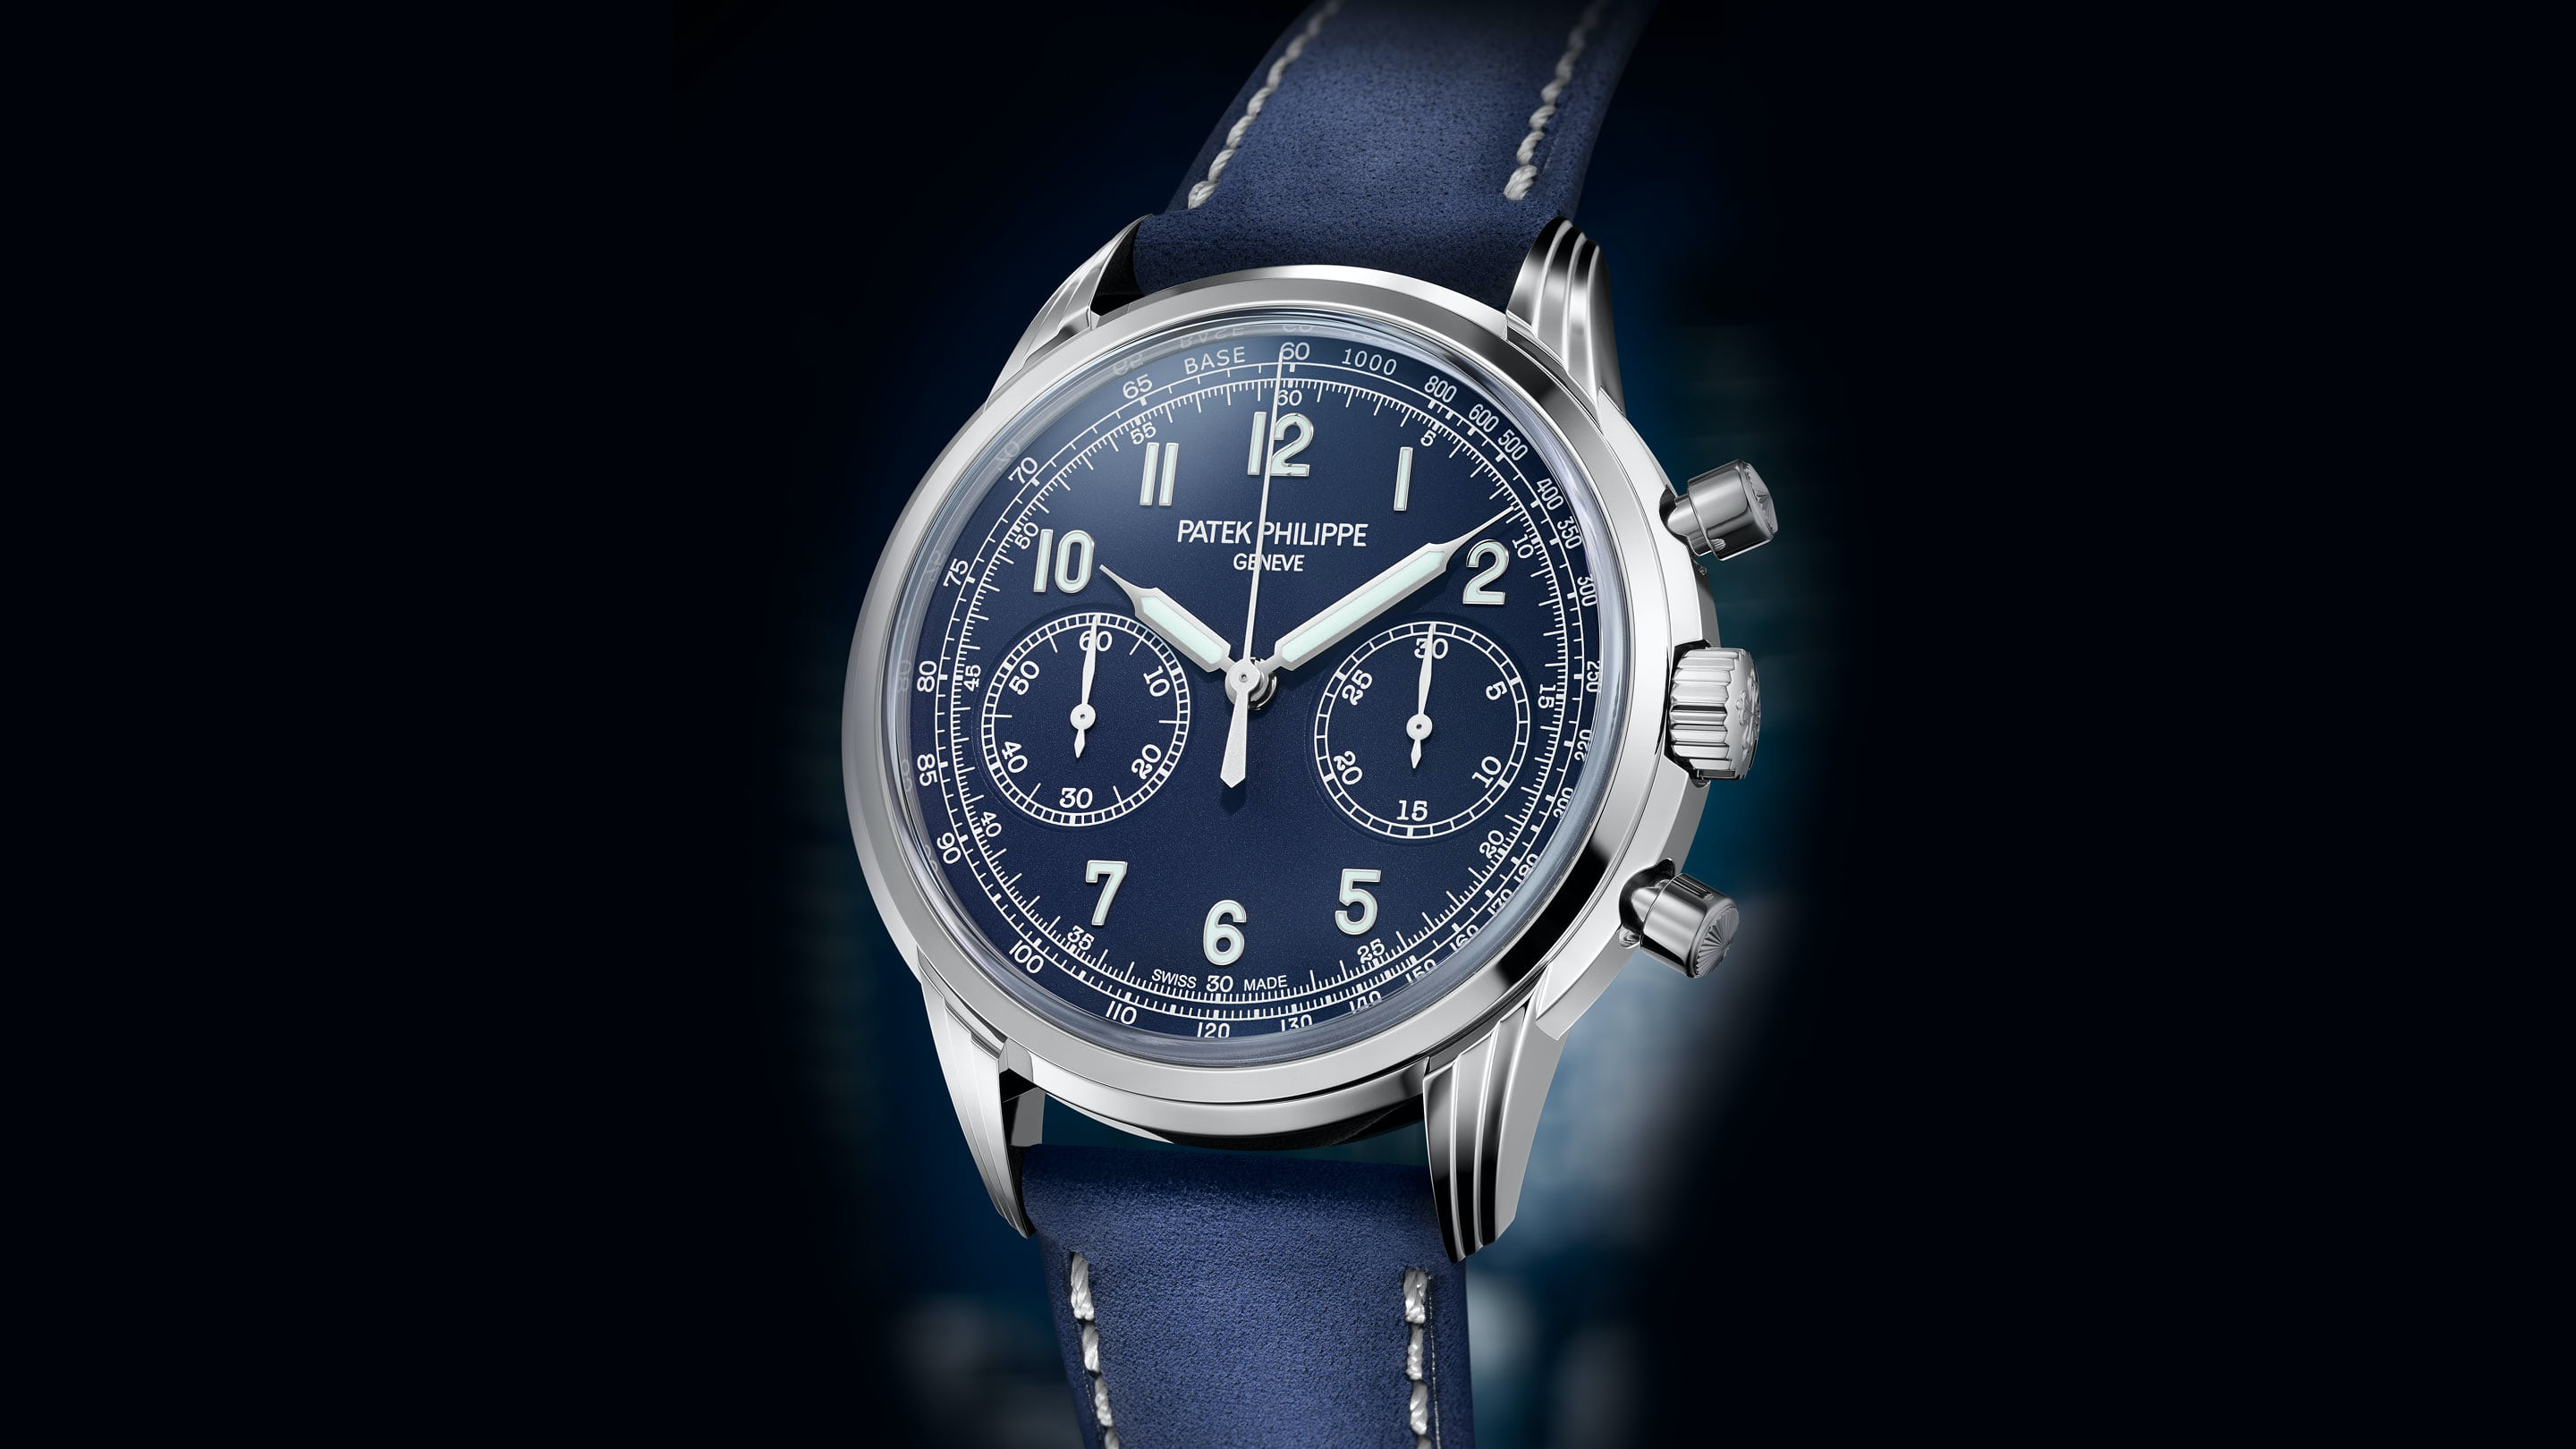 Introducing The Patek Philippe 5172g Chronograph Hodinkee